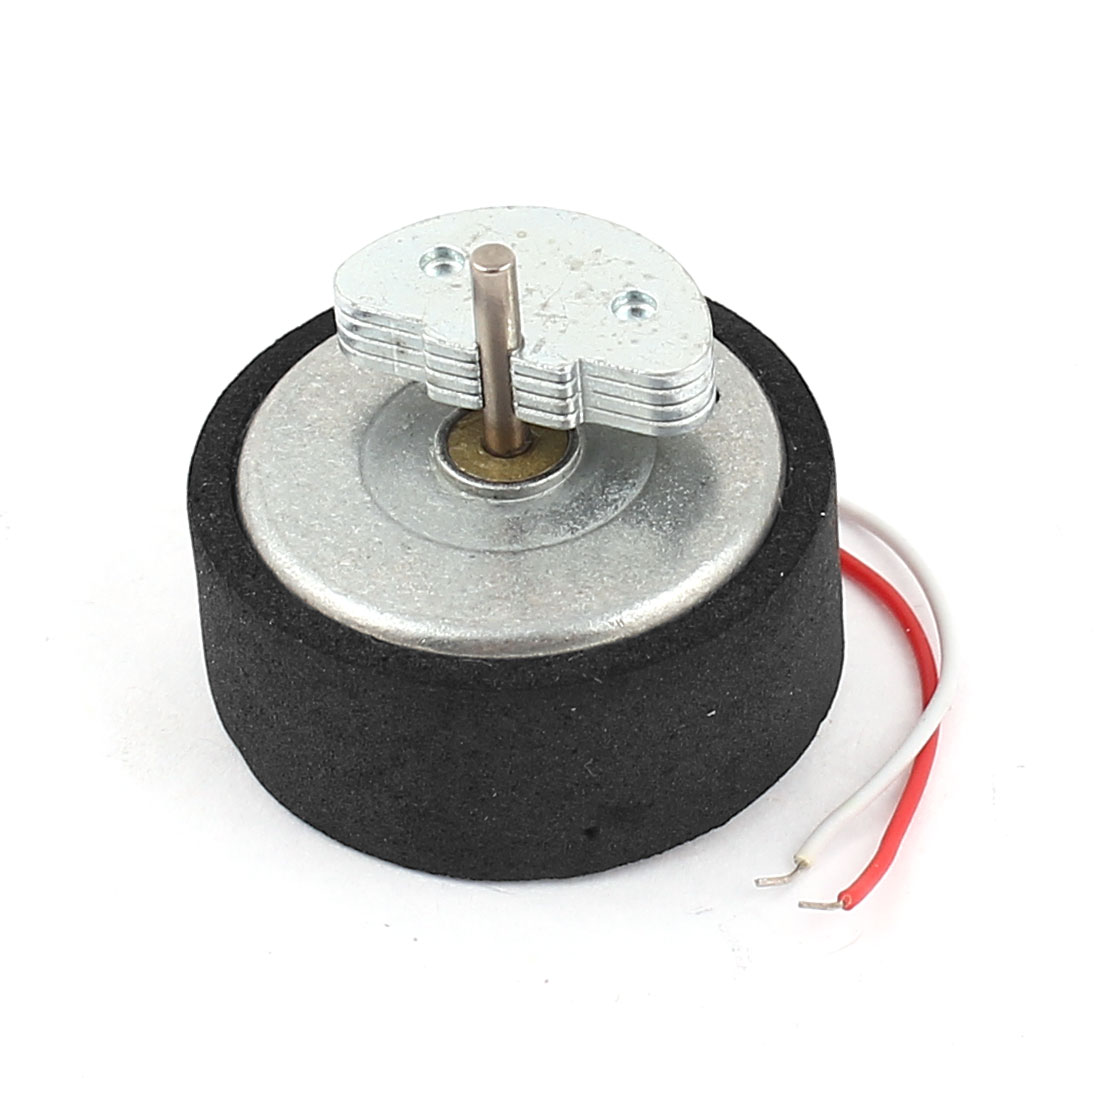 DC 3V 0.02A 5000RPM Foam Coated Vibration Vibrating Motor for Game Control Joystick